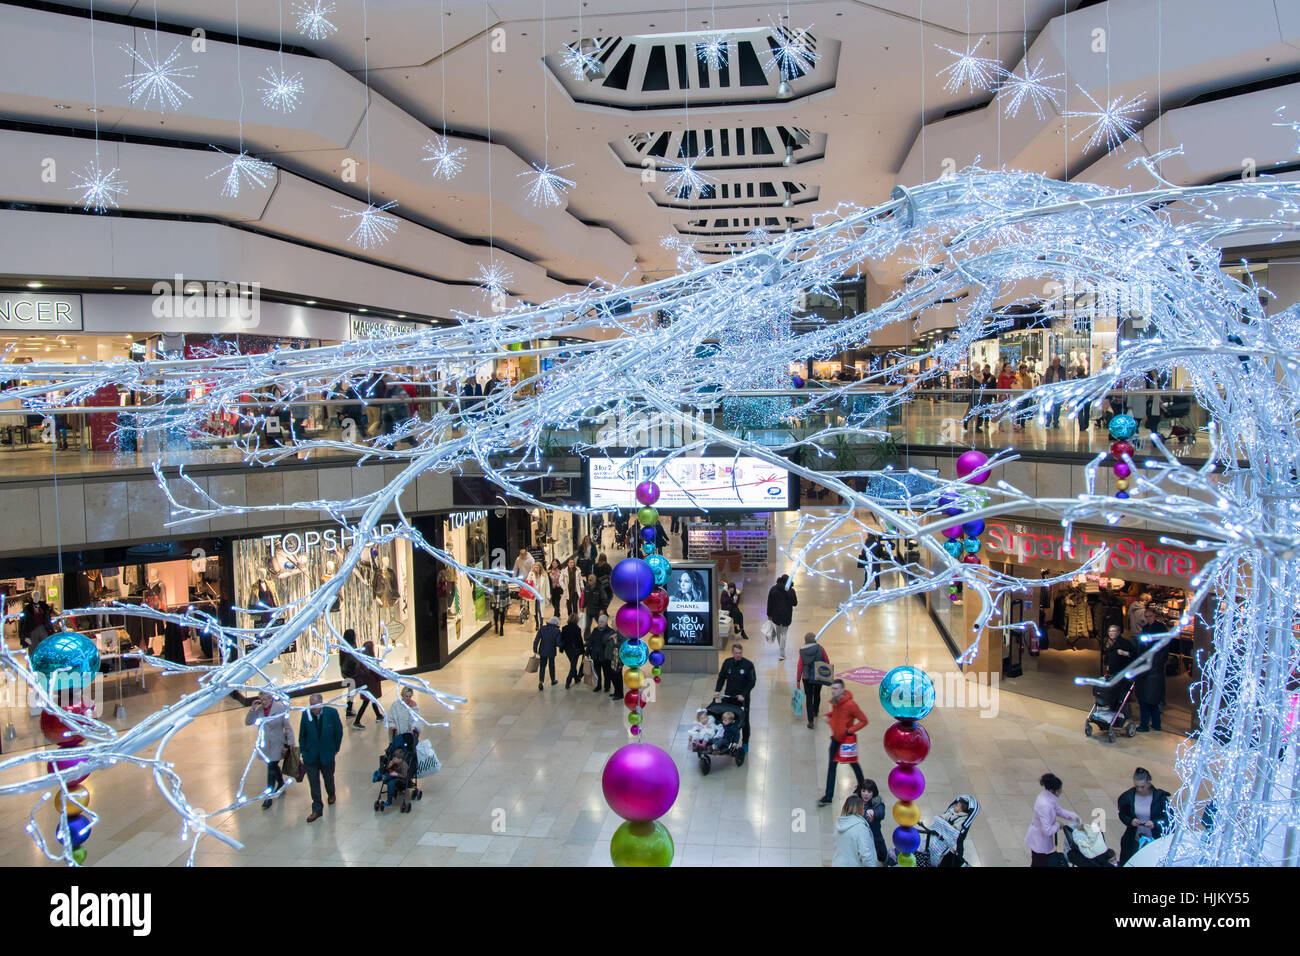 Christmas decorations, Queensgate shopping centre, Peterborough - Stock Image